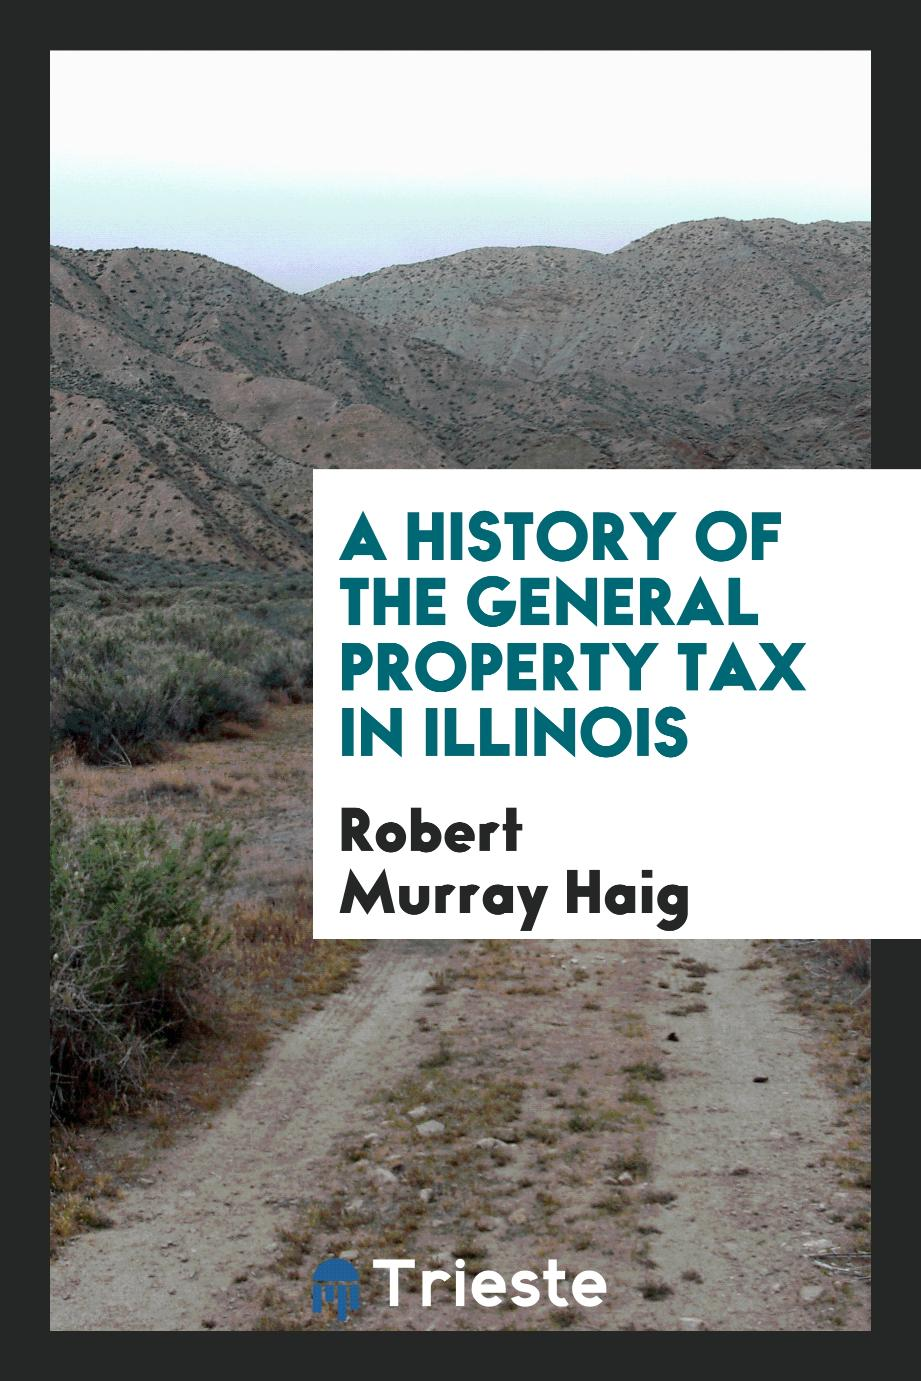 A History of the General Property Tax in Illinois